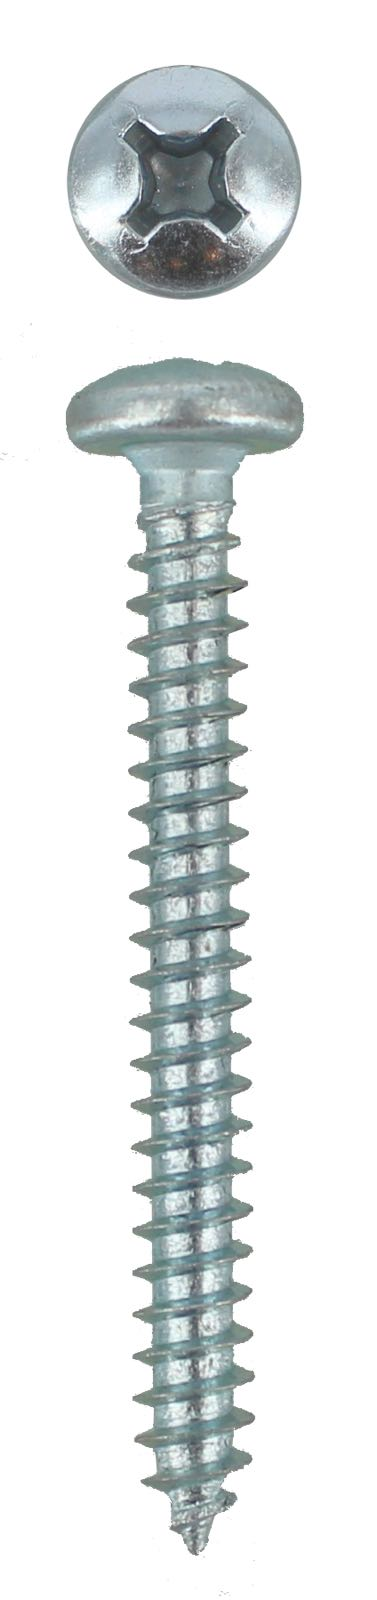 SELF TAPPING SCREW PAN PHILLIPS 8G X 1 1/2 (QTY 50)